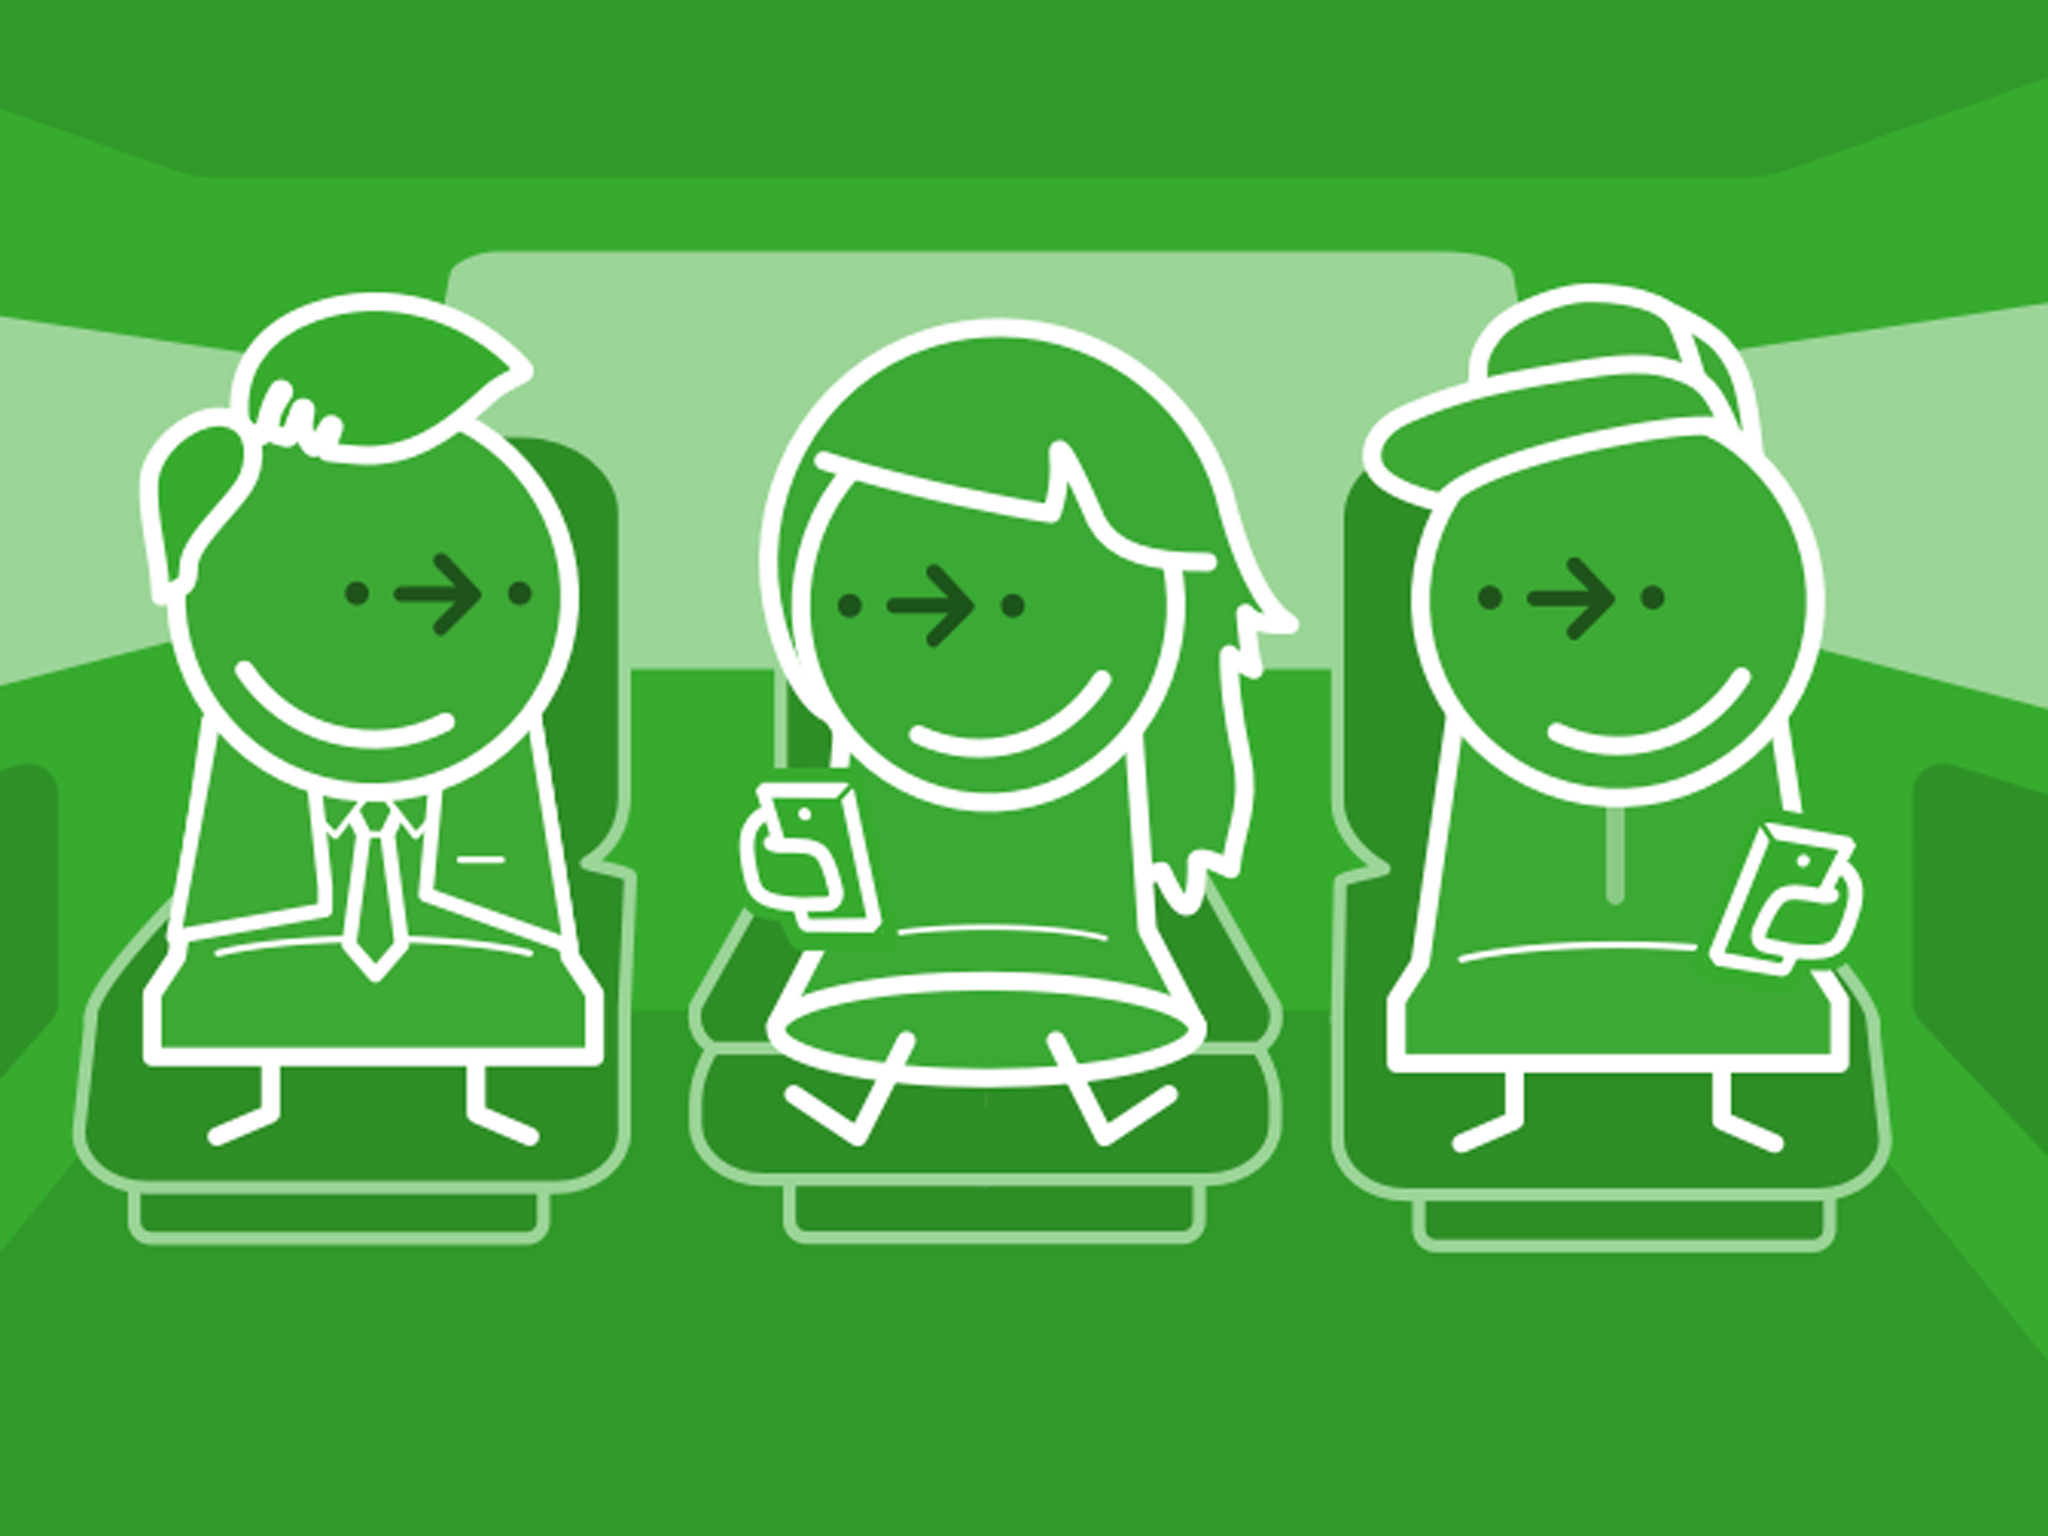 Citymapper just launched a new bus network – and right now, it's FREE